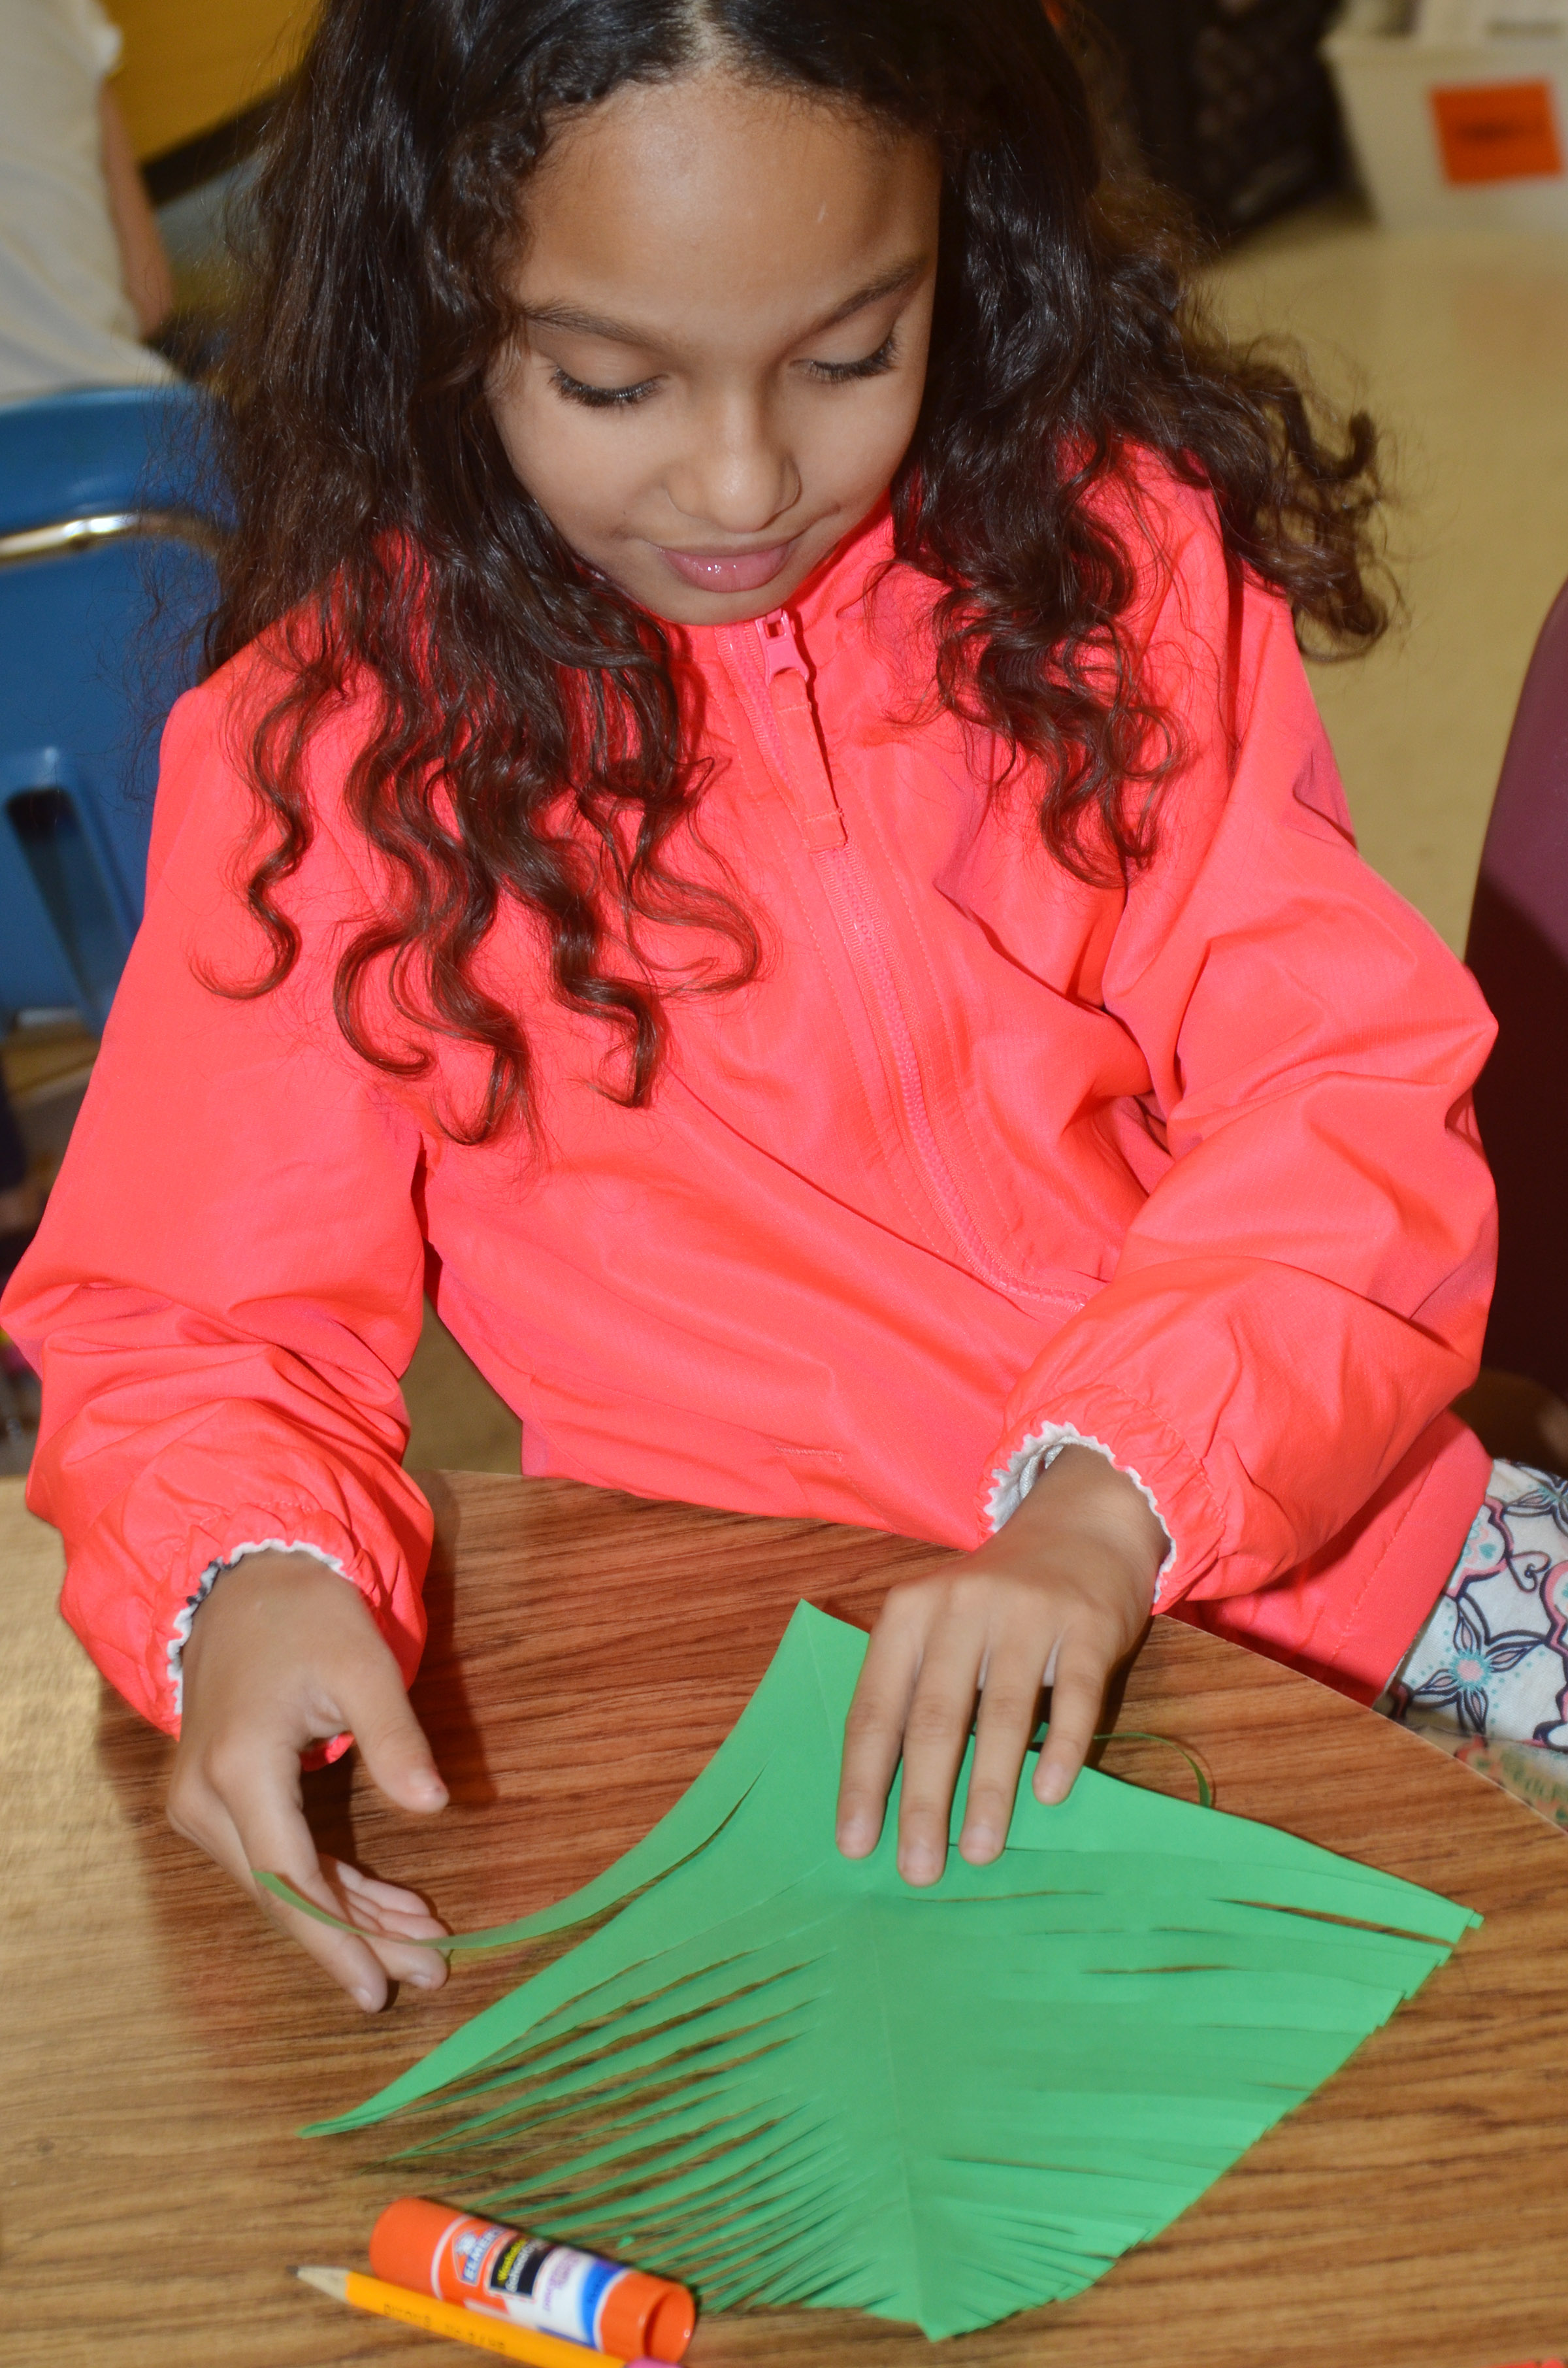 CES third-grader Alyssa Knezevic folds her paper after cutting it.